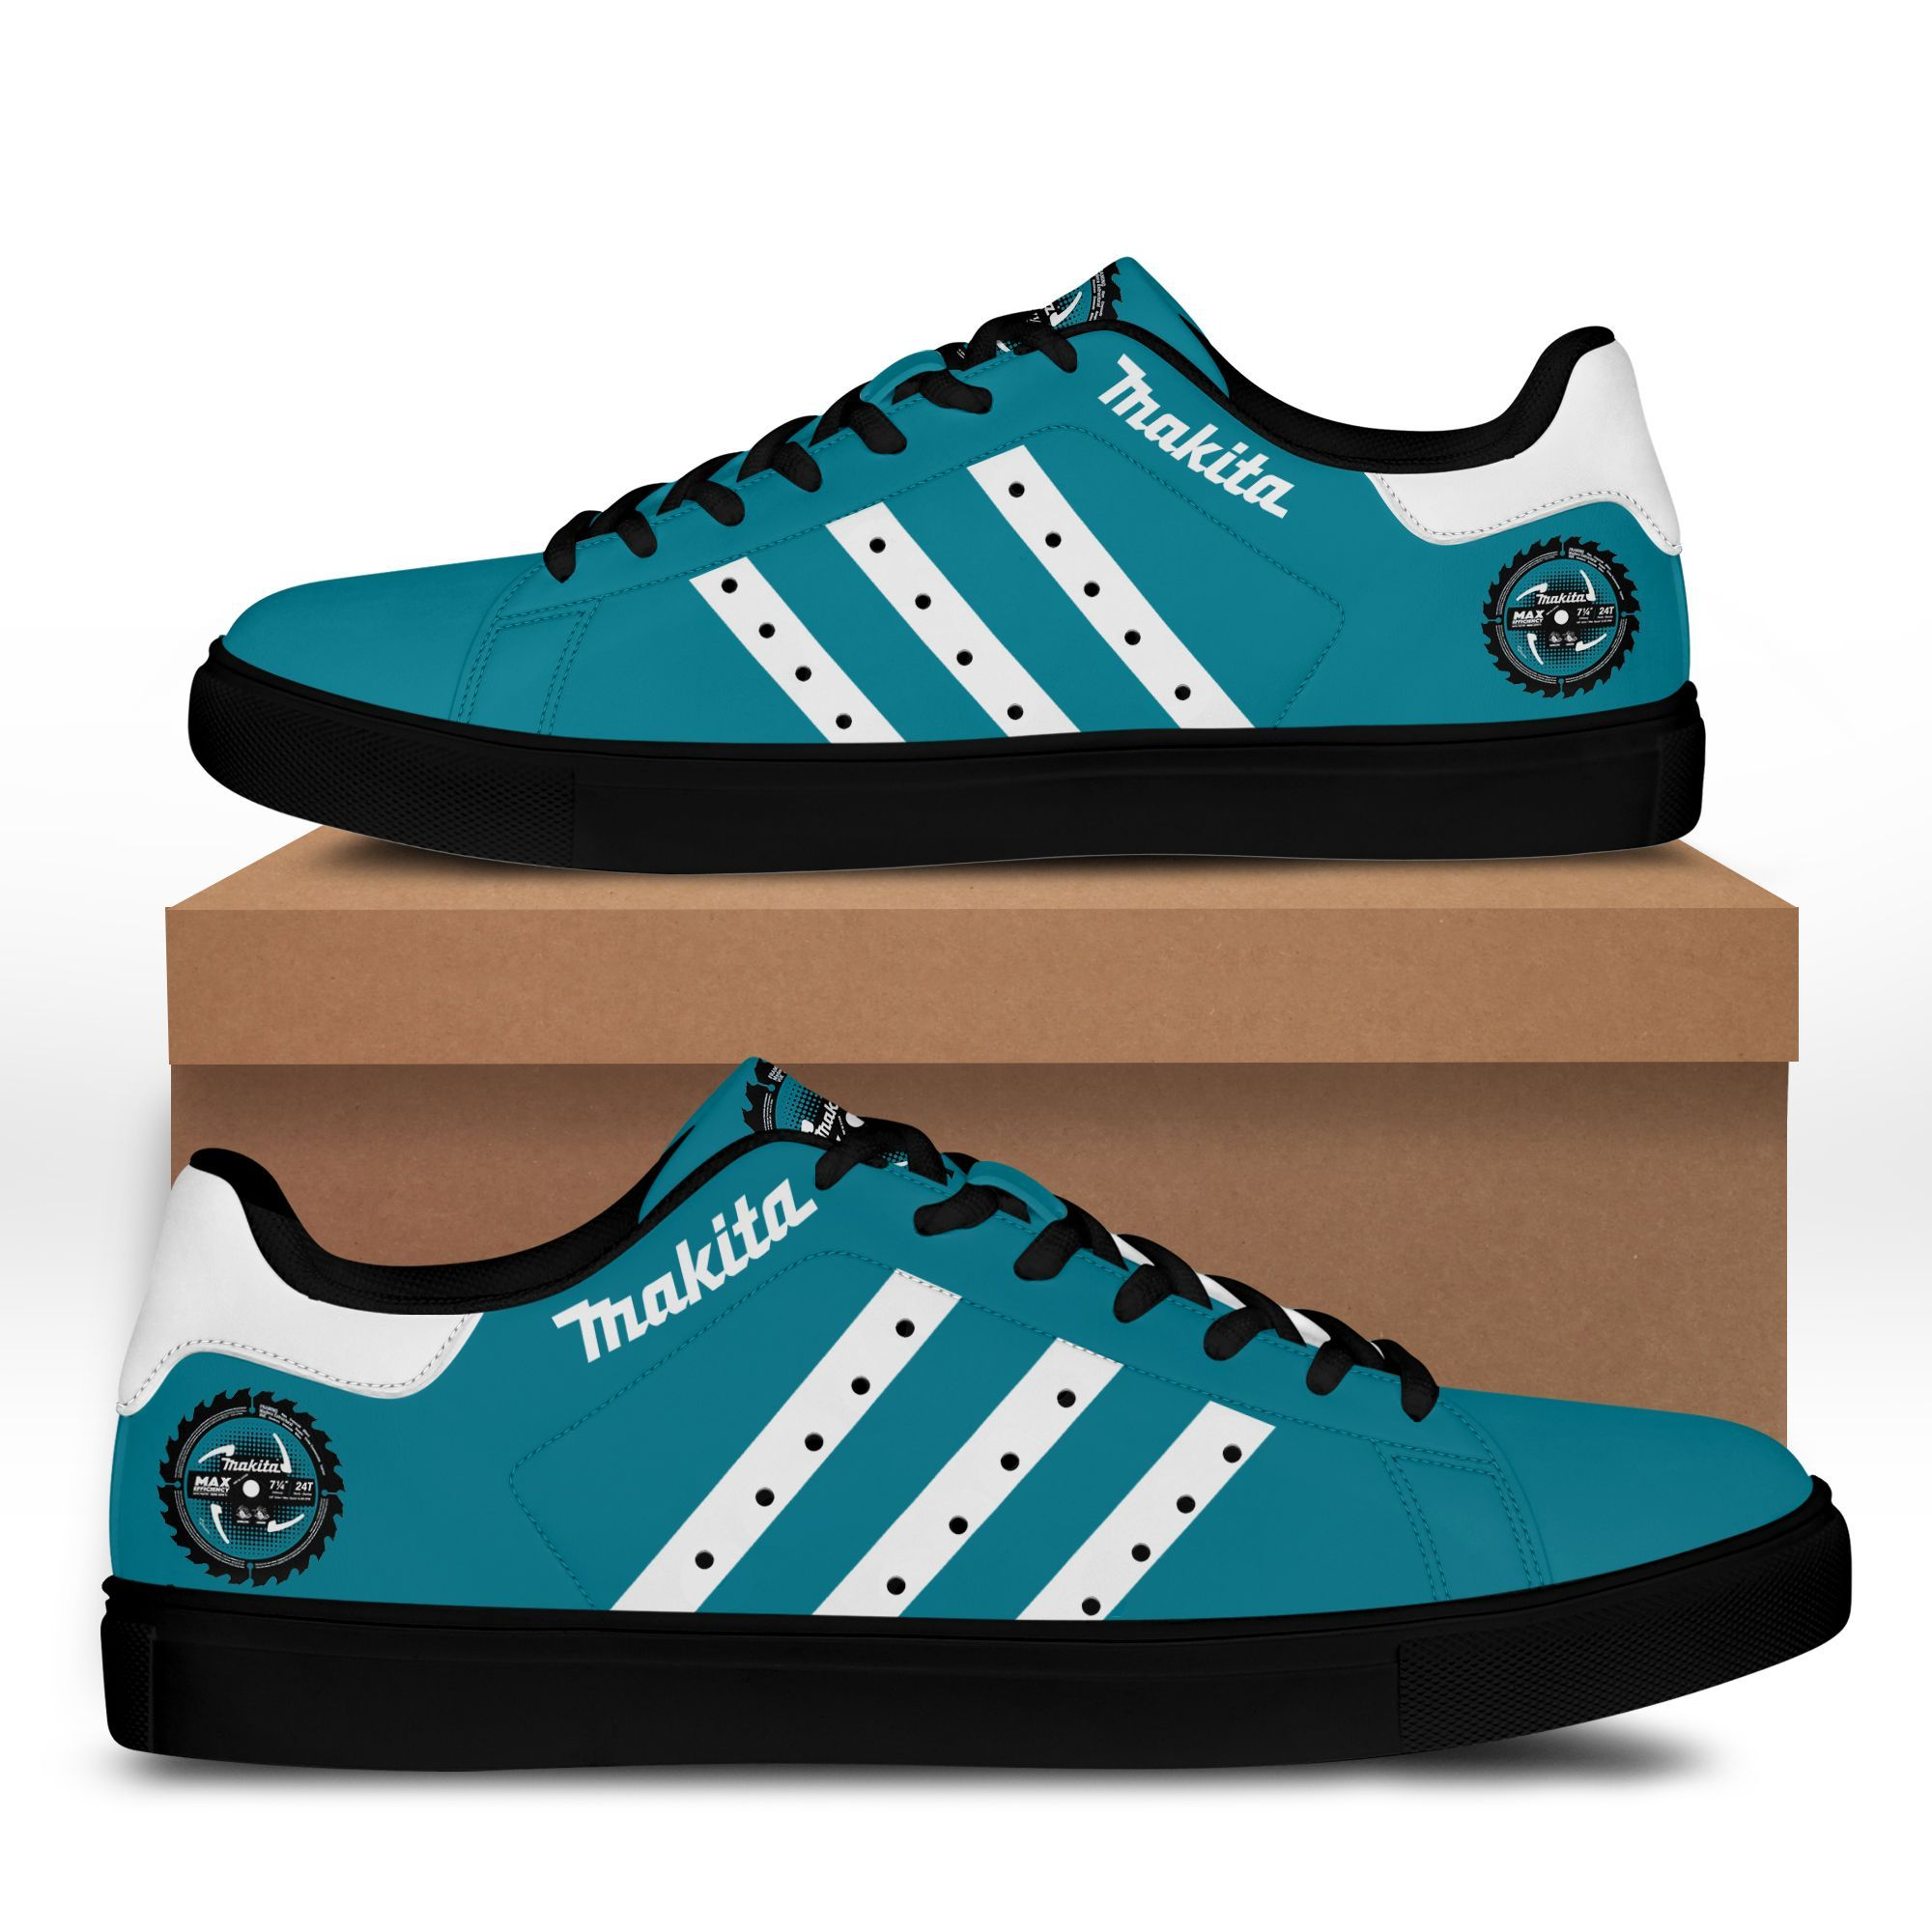 Makita turquoise version Stan Smith Shoes Sneaker